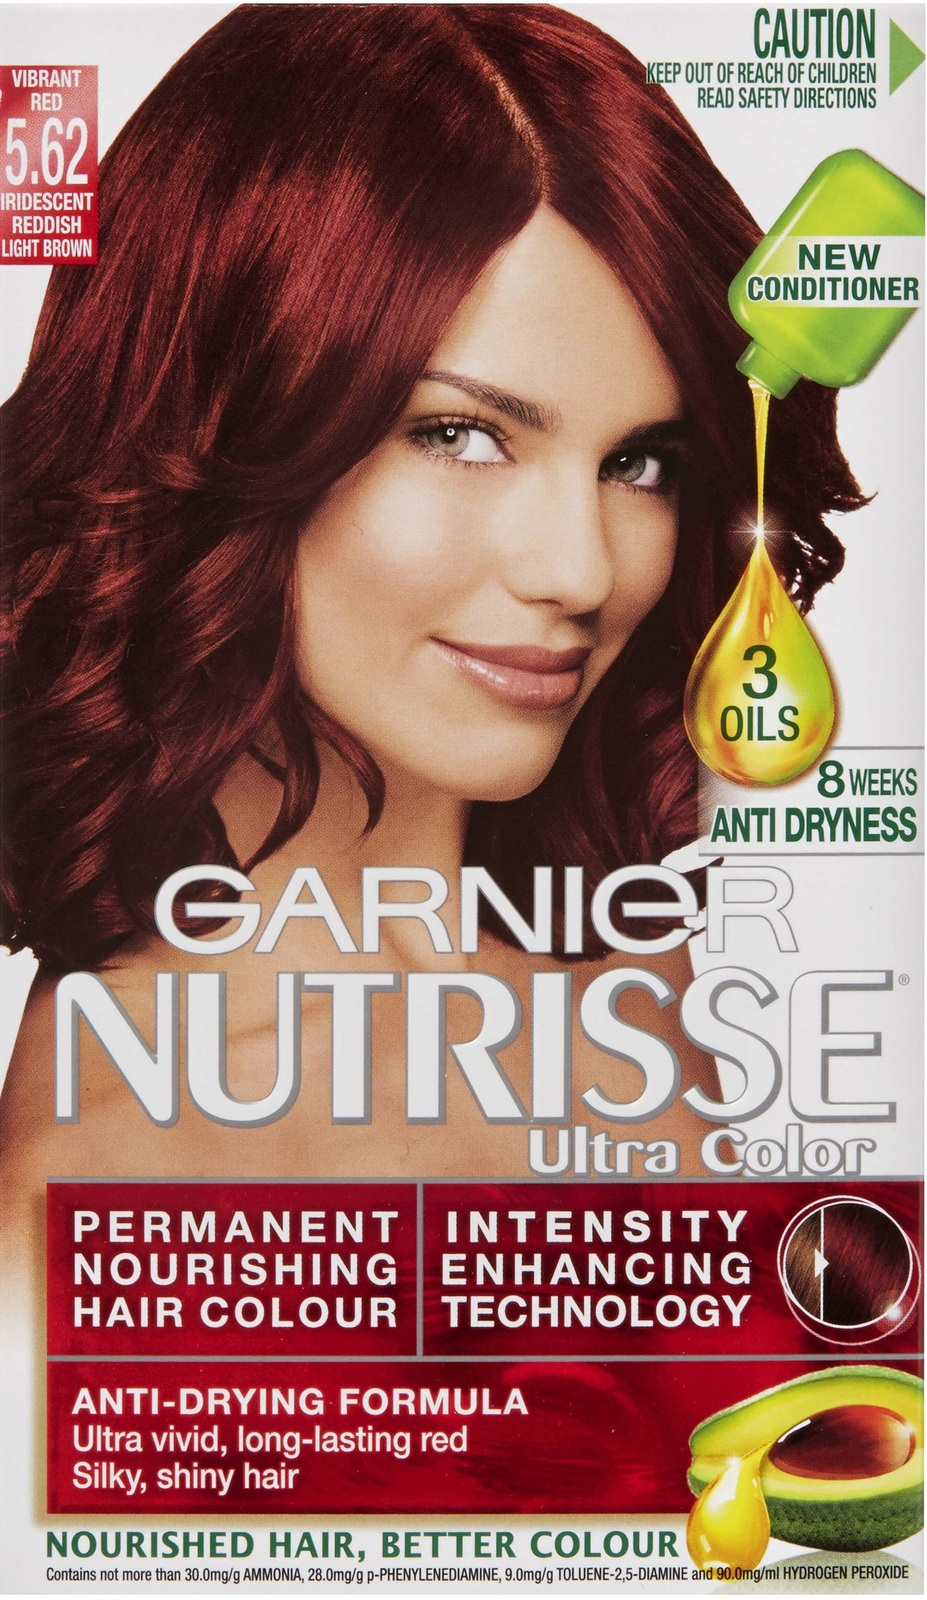 Buy Garnier Nutrisse Ultra Hair Colour 562 Vibrant Red At Mighty Ape Nz